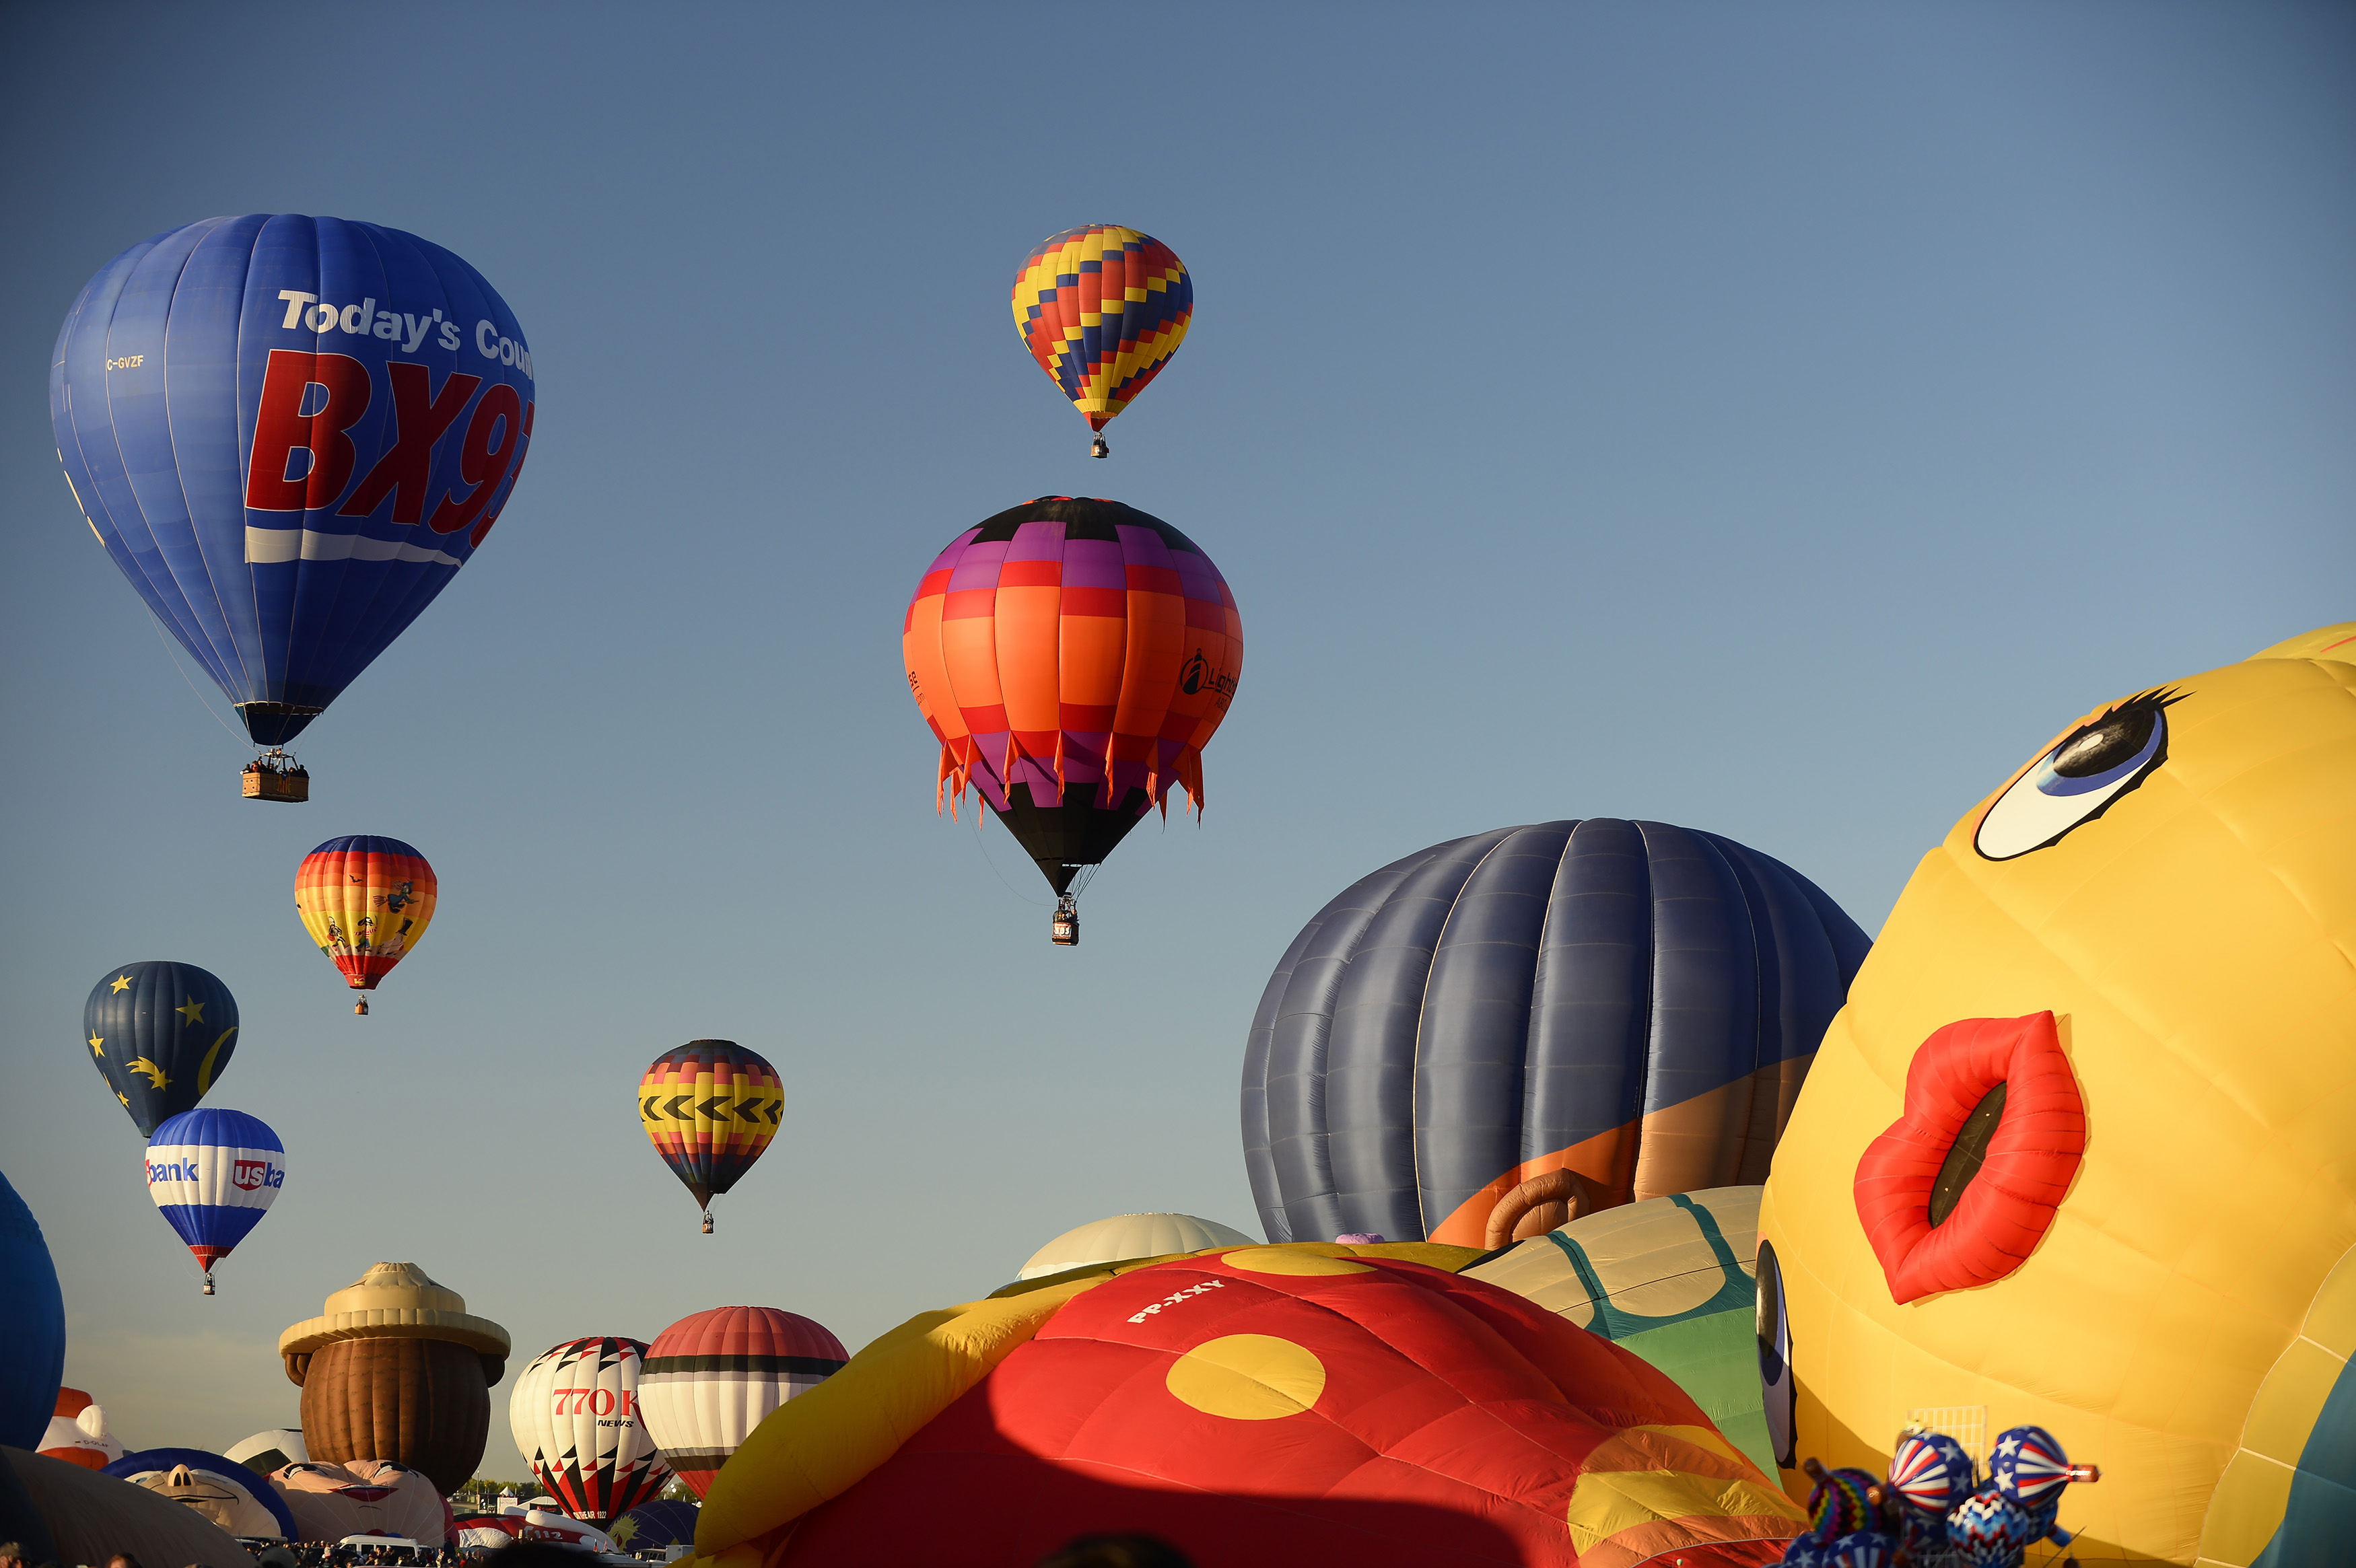 Balloonists lift off during a mass ascension at the 2016 Albuquerque International Balloon Fiesta. Photo by David Tulis.